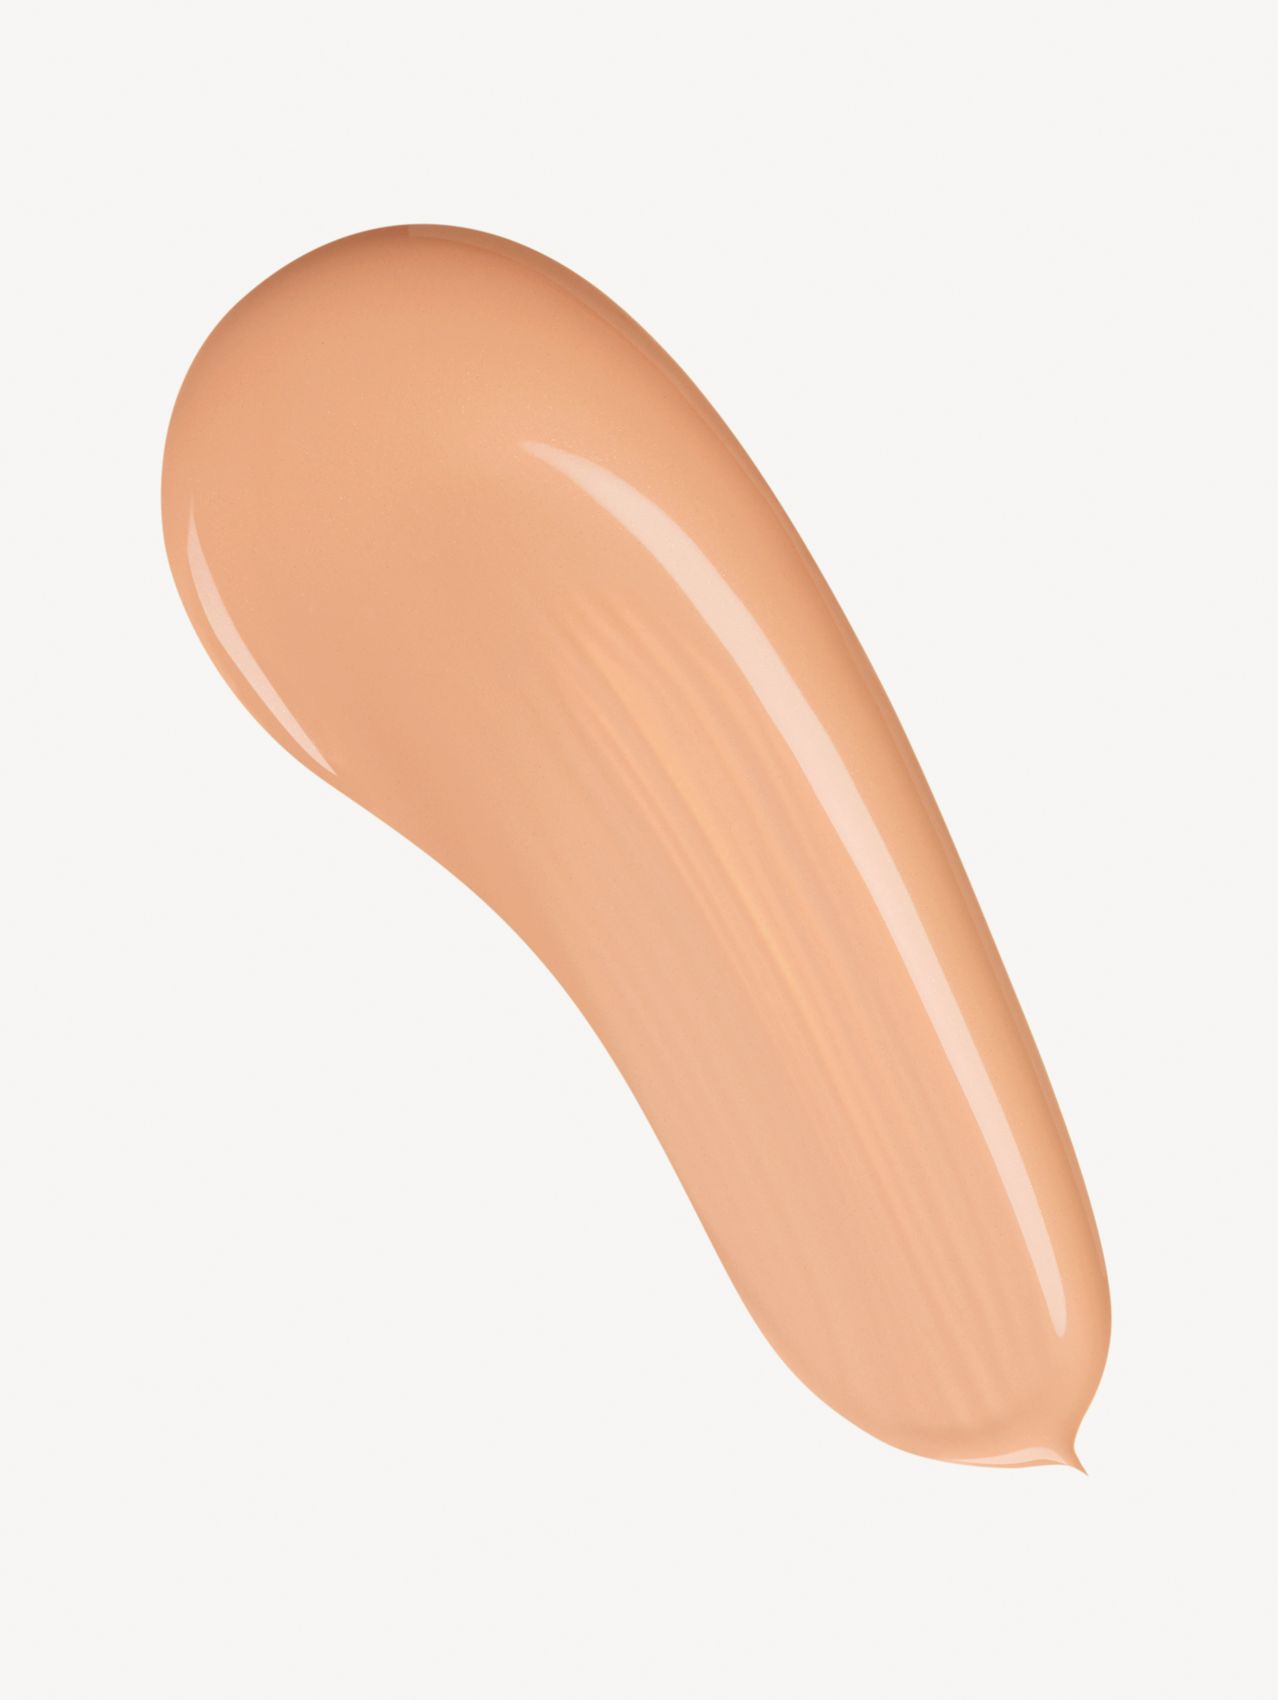 Base Fresh Glow FPS 15 PA+++ – Rosy Nude No.31